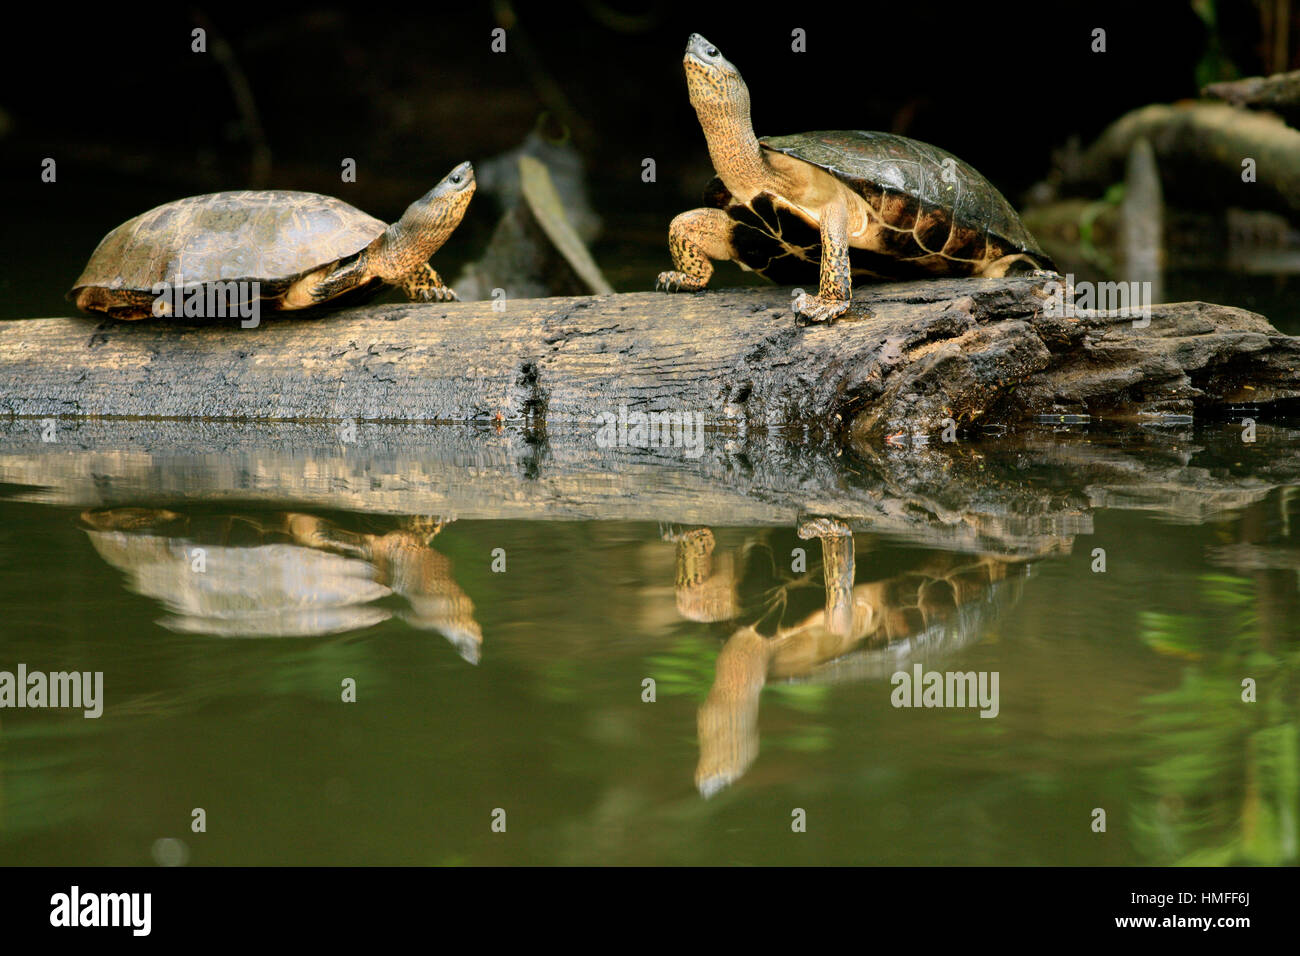 Black river turtles (Rhinoclemmys funerea) on natural rainforest canal. Tortuguero National Park, Costa Rica. - Stock Image